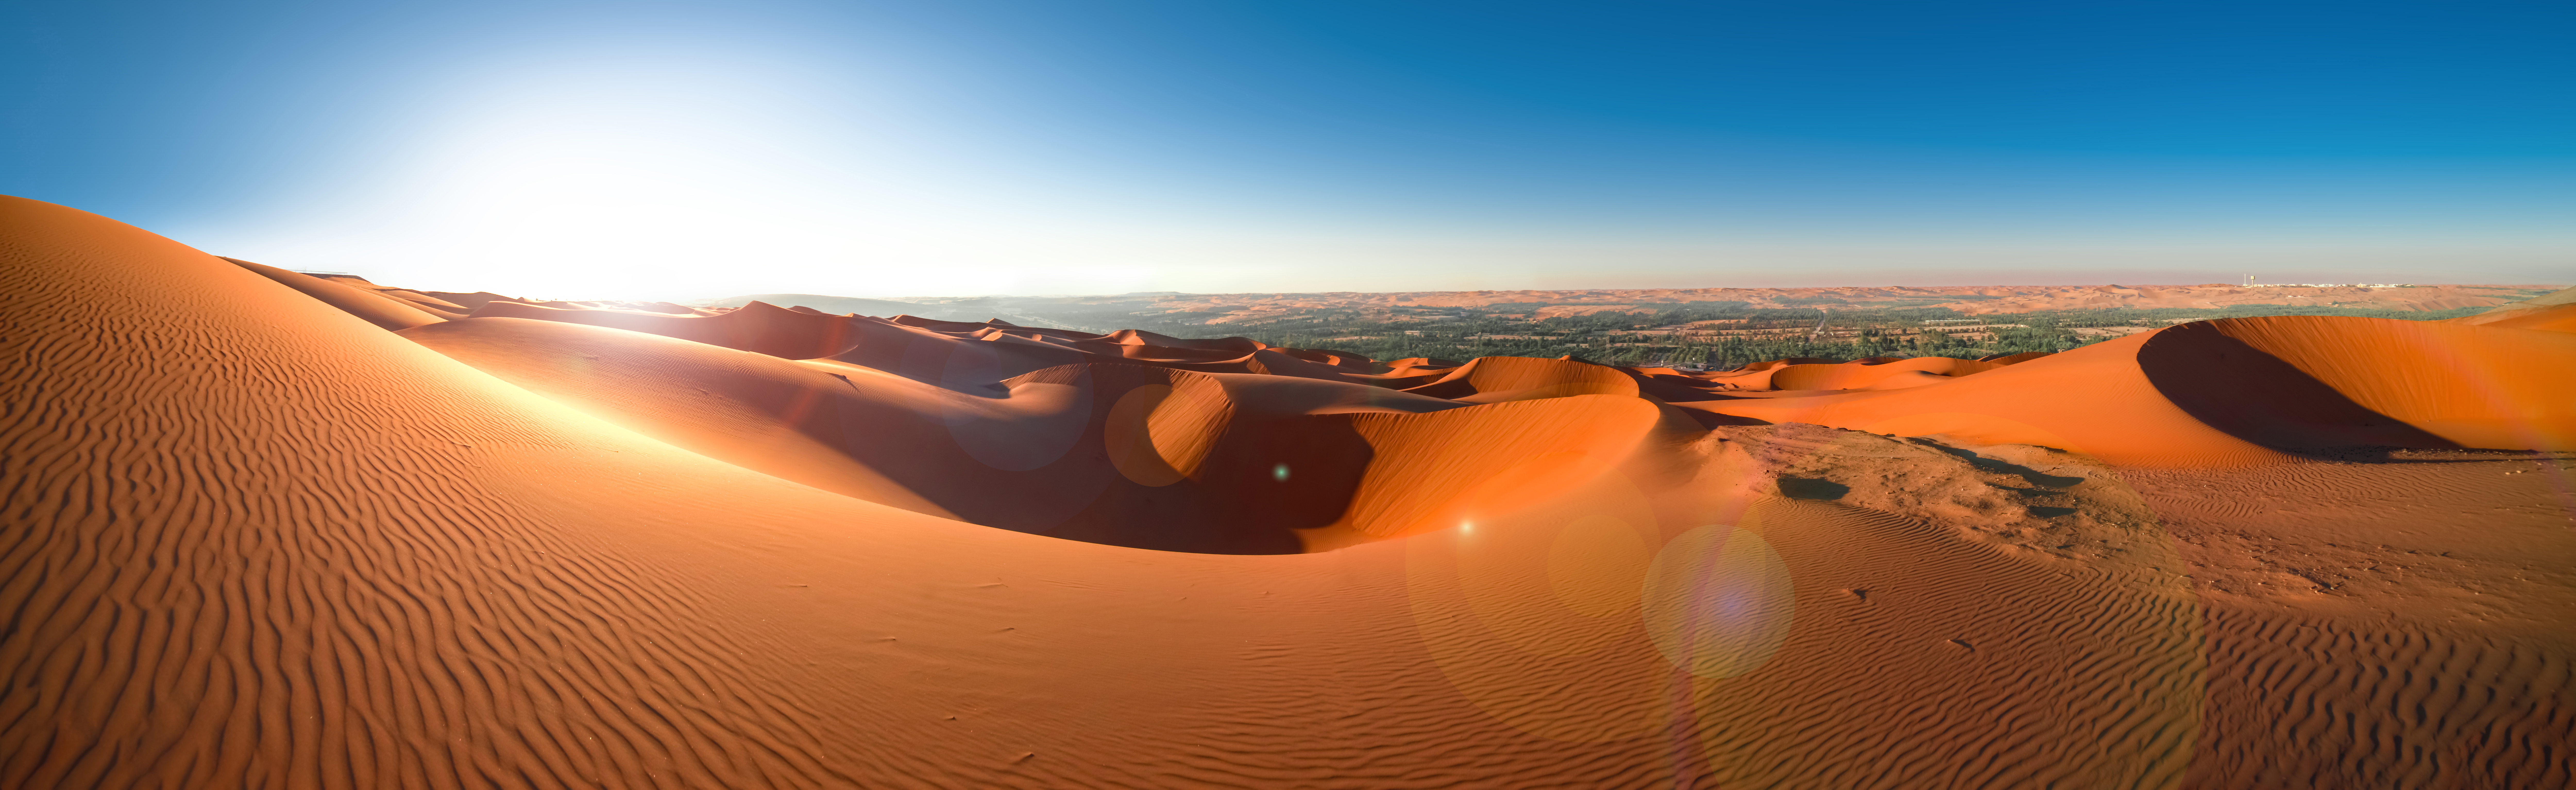 Holidays to the Middle East, desert adventures for everyone